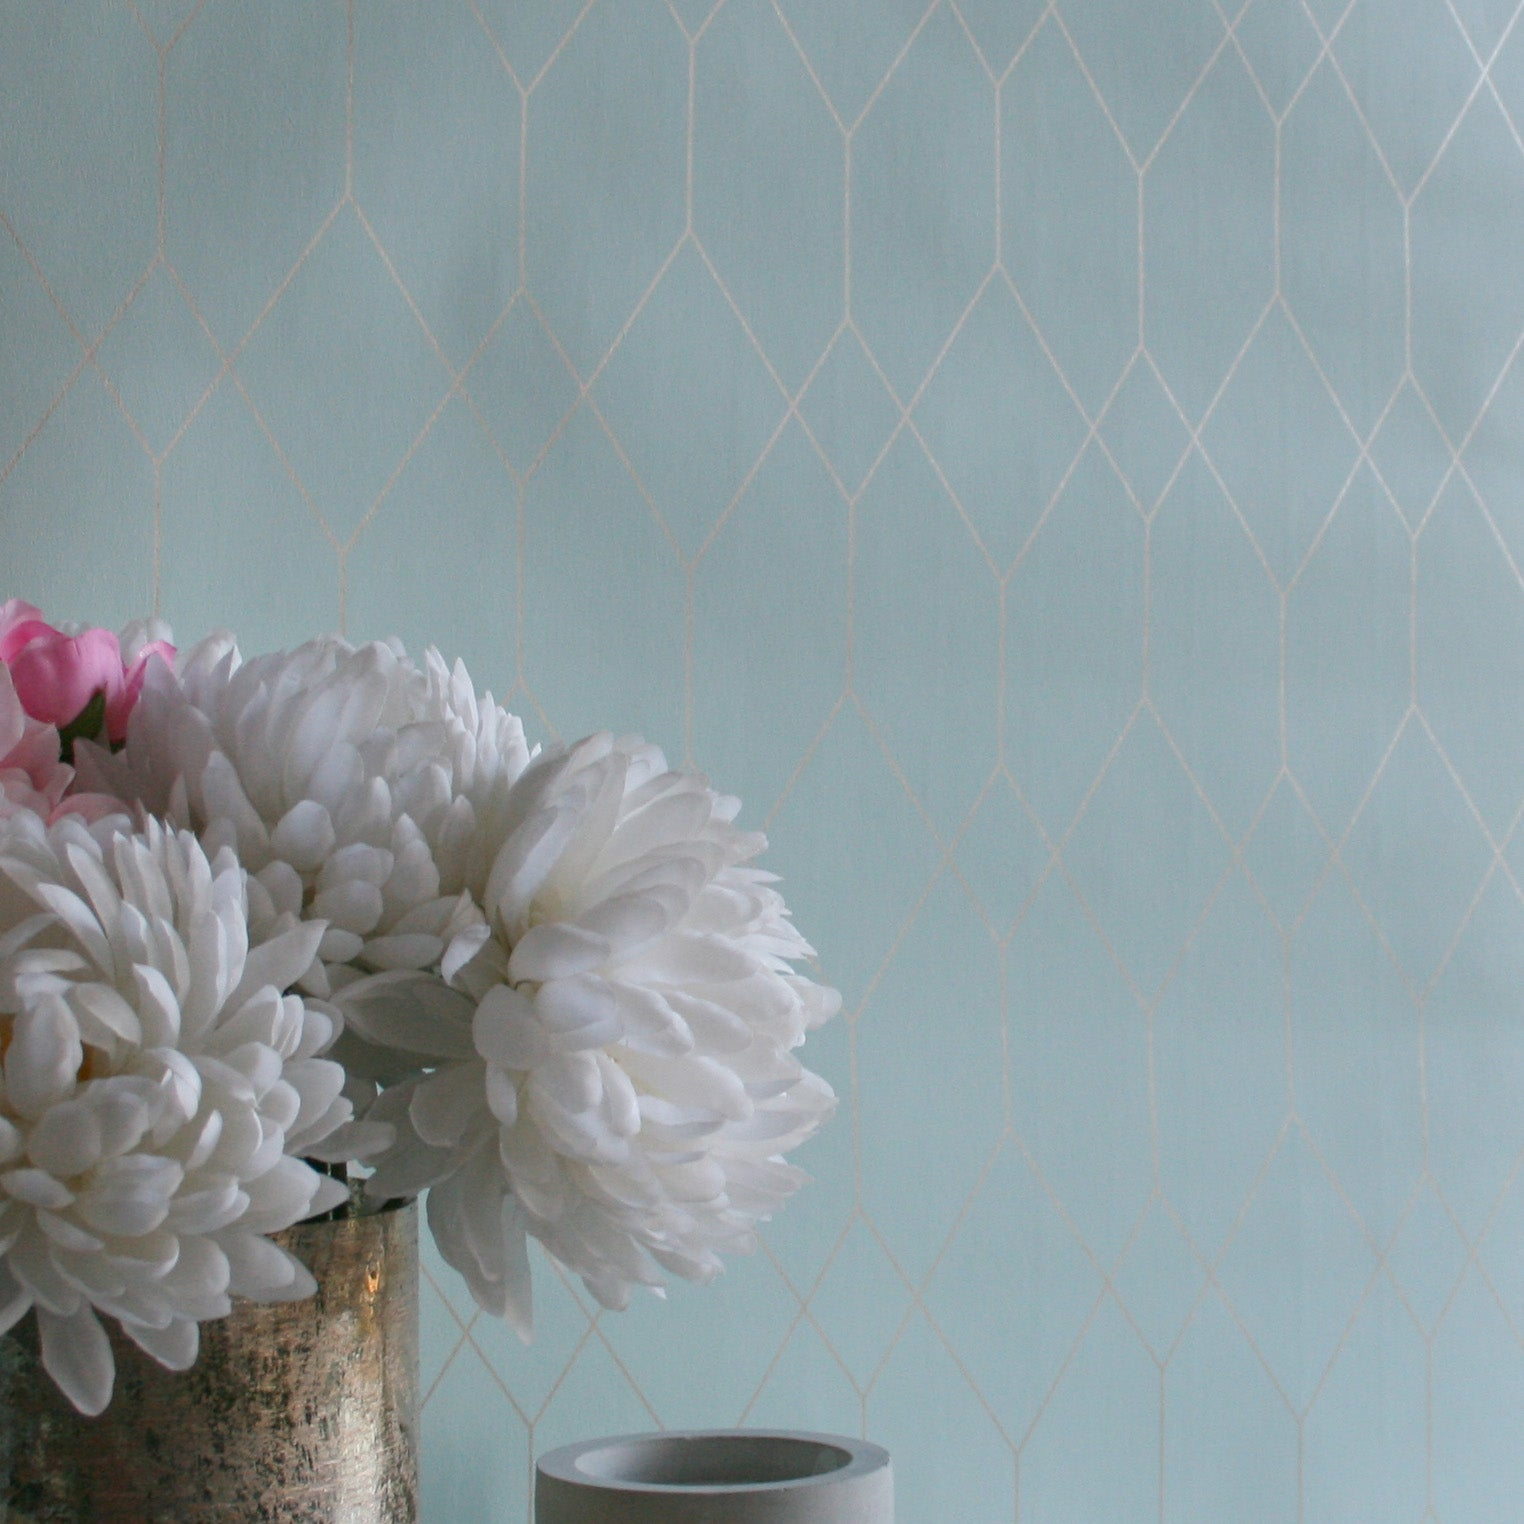 Polygon | Geometric Designer Wallpaper in Mint Green & Gold